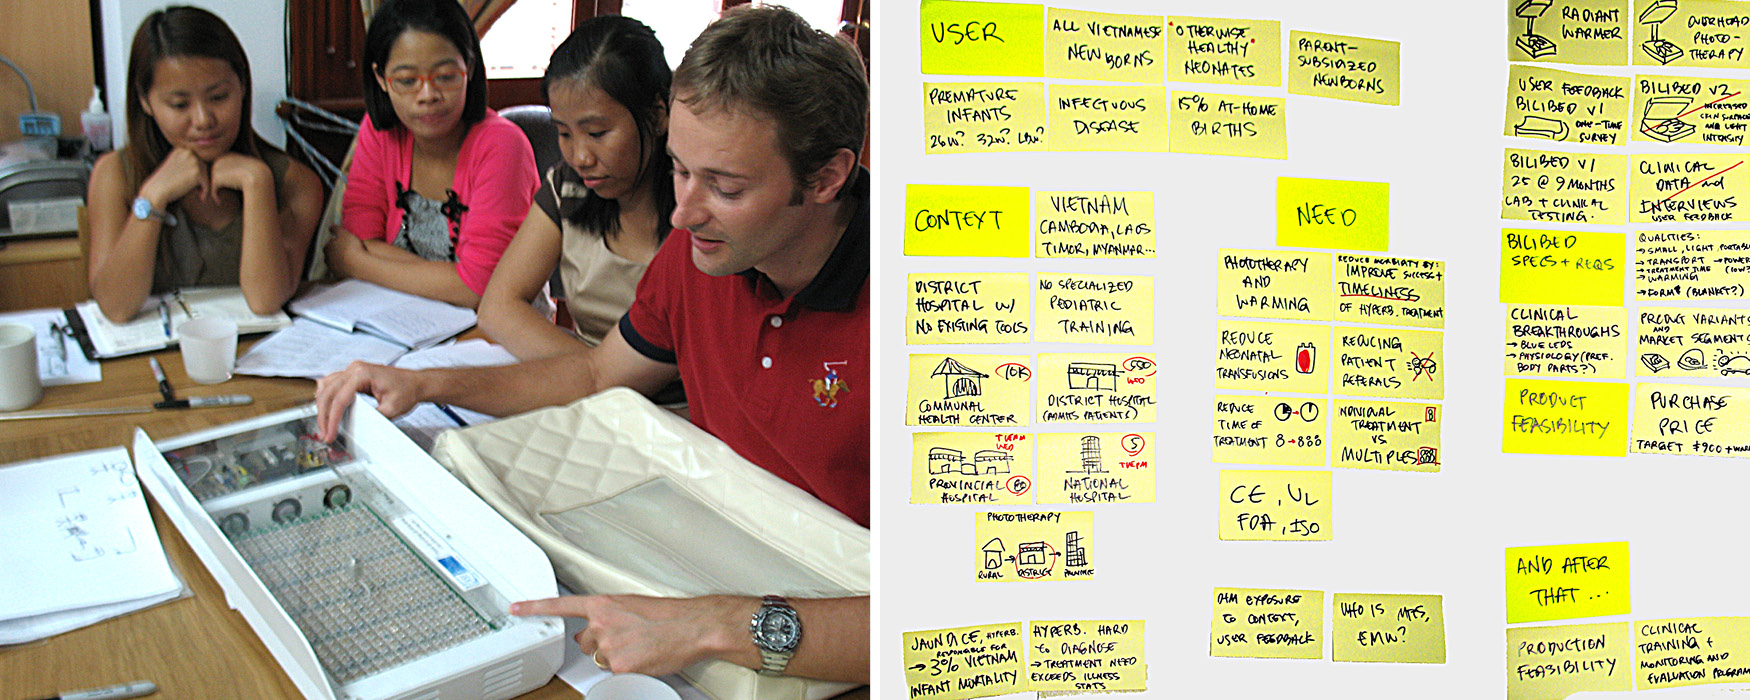 The staff at manufacturing partner MTTS talk Design that Matters through their Bilibed phototherapy design to help us understand the need, user, and context at the Firefly kick-off in Vietnam.